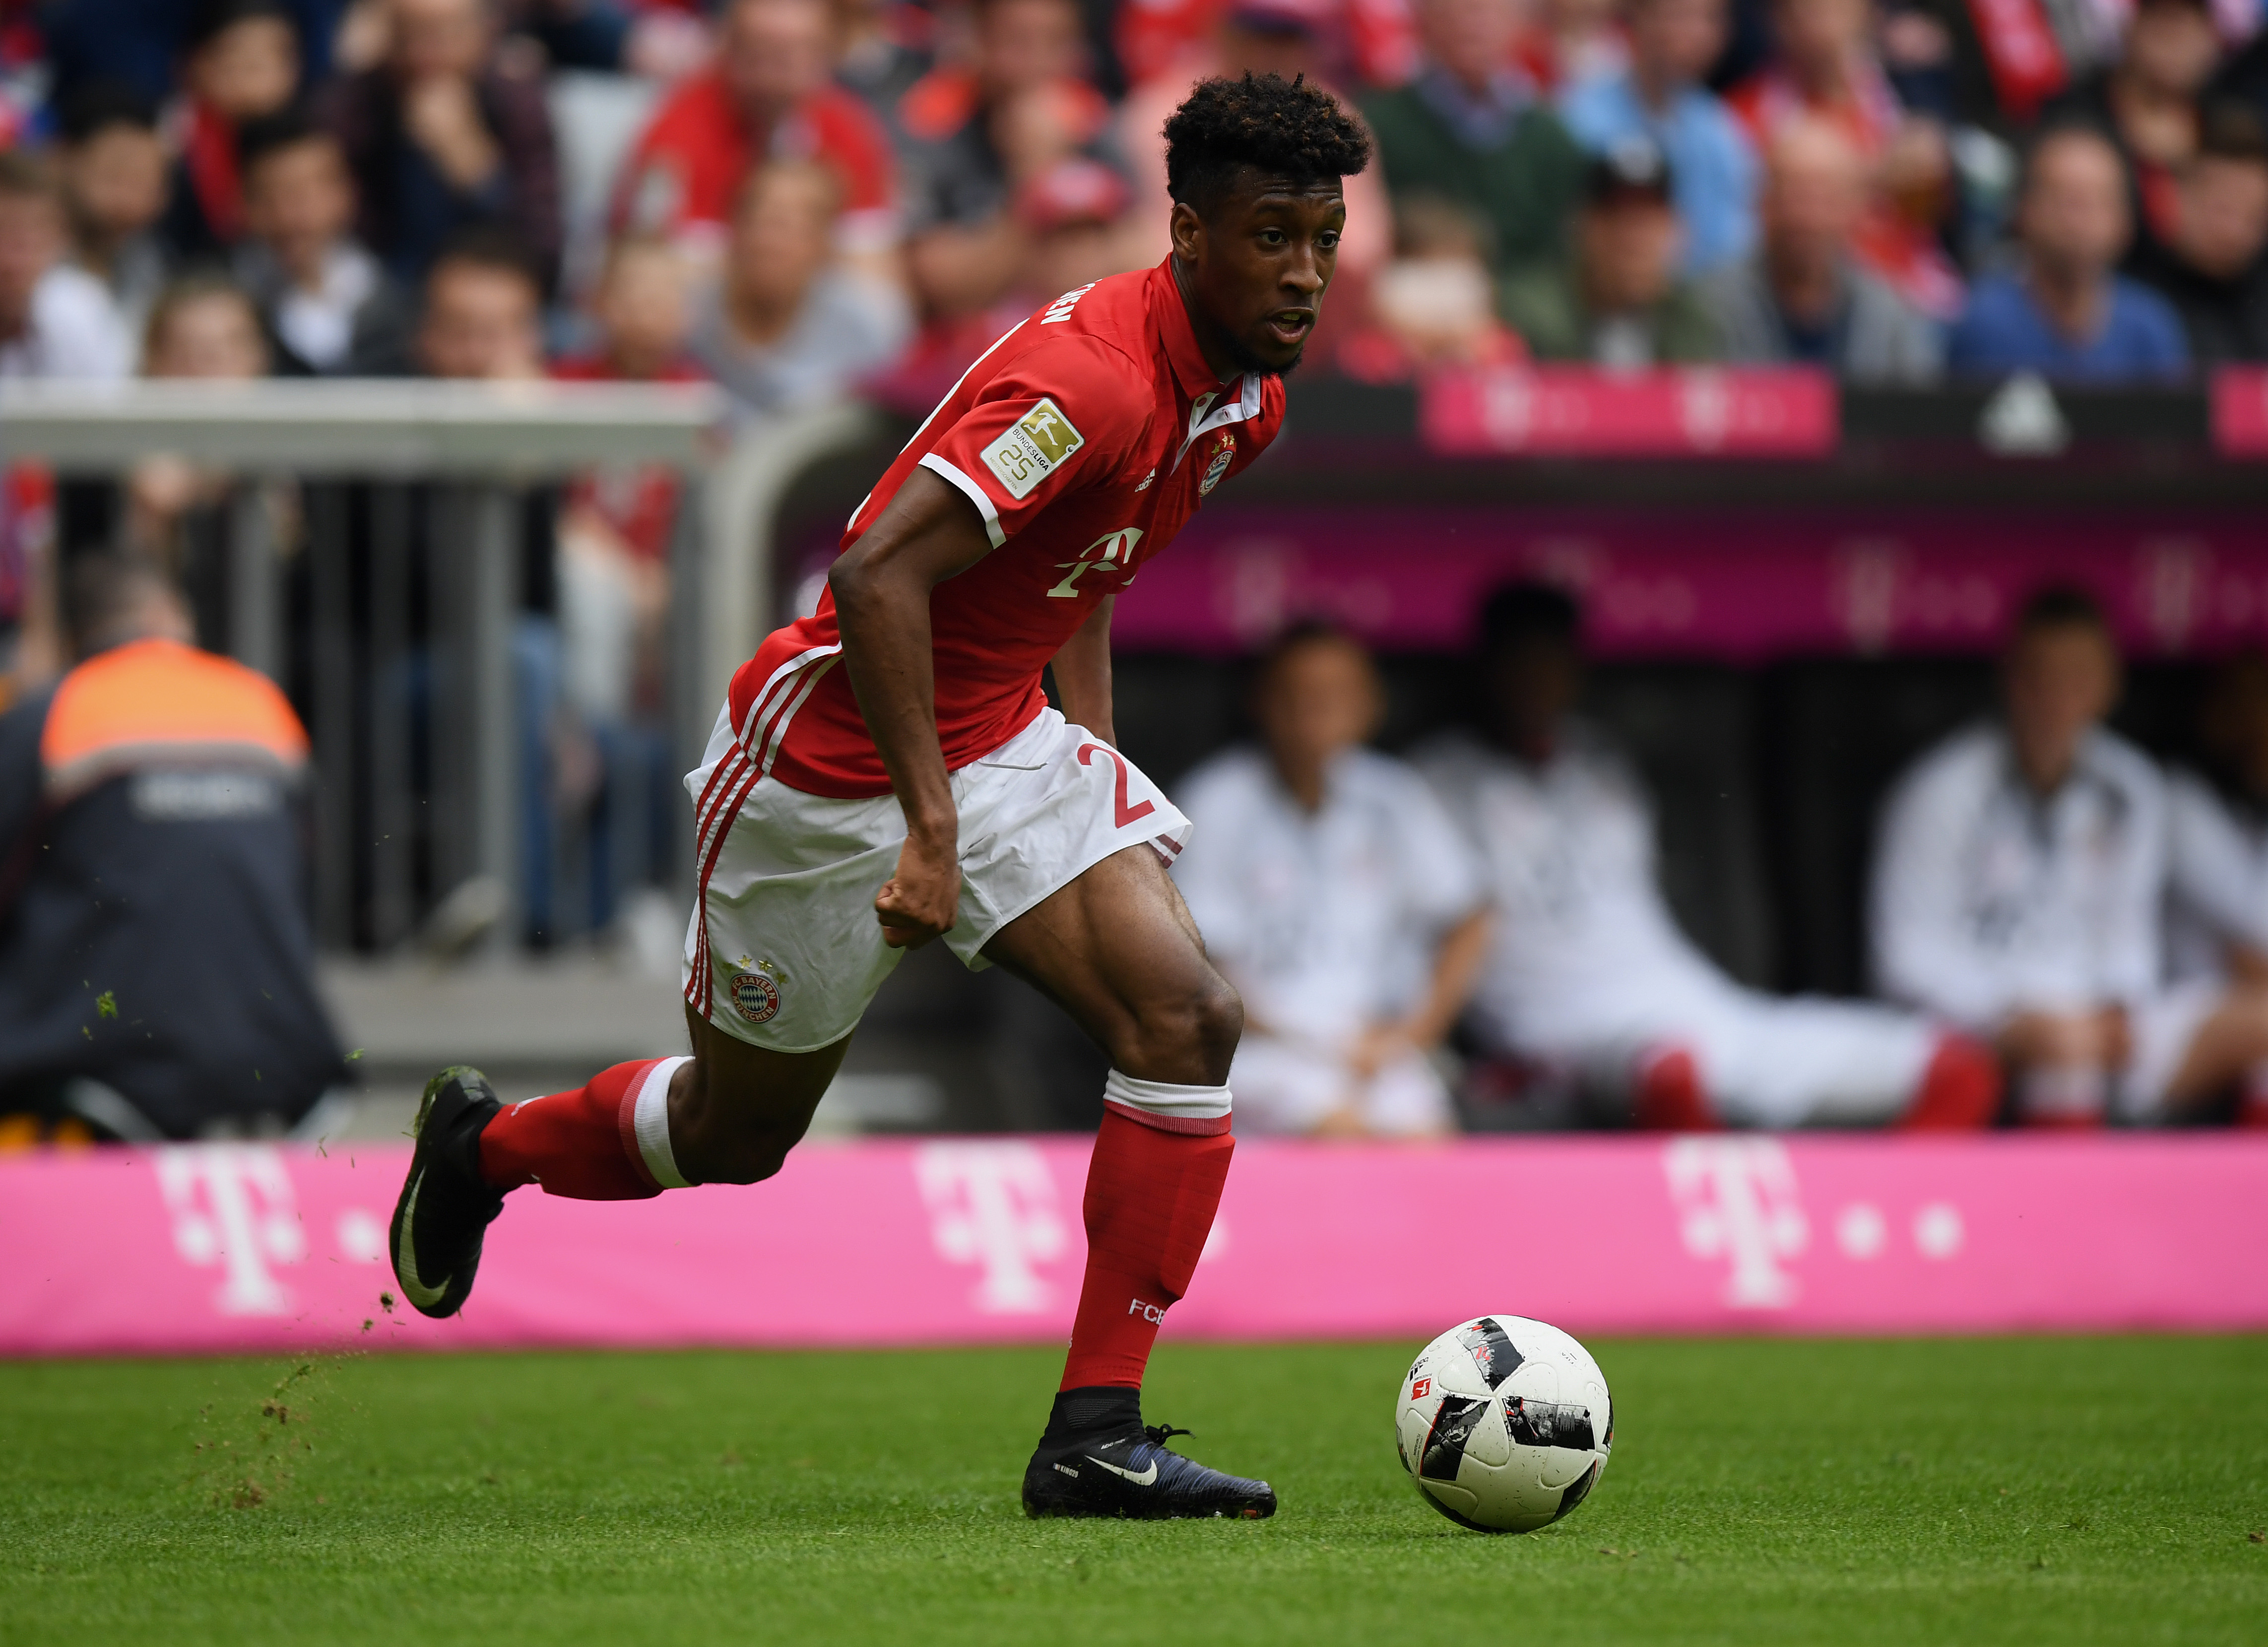 Could Coman be on his way out of Bayern next year? (Photo by Matthias Hangst/Bongarts/Getty Images)